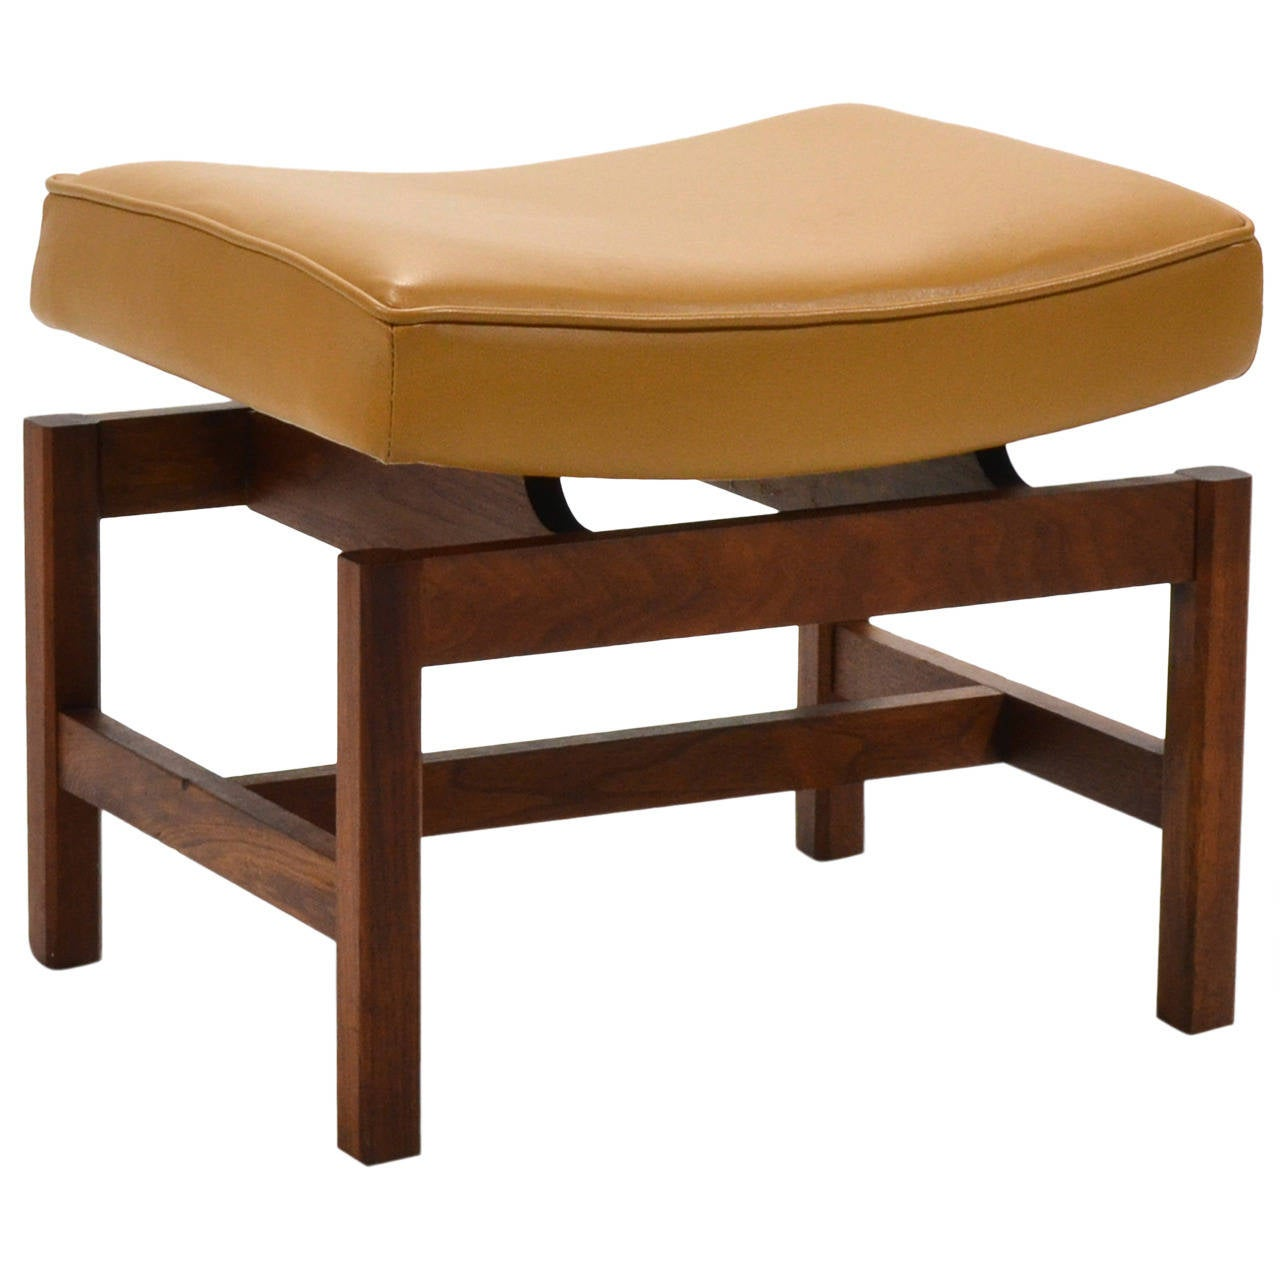 Jens Risom Stool Or Bench At 1stdibs